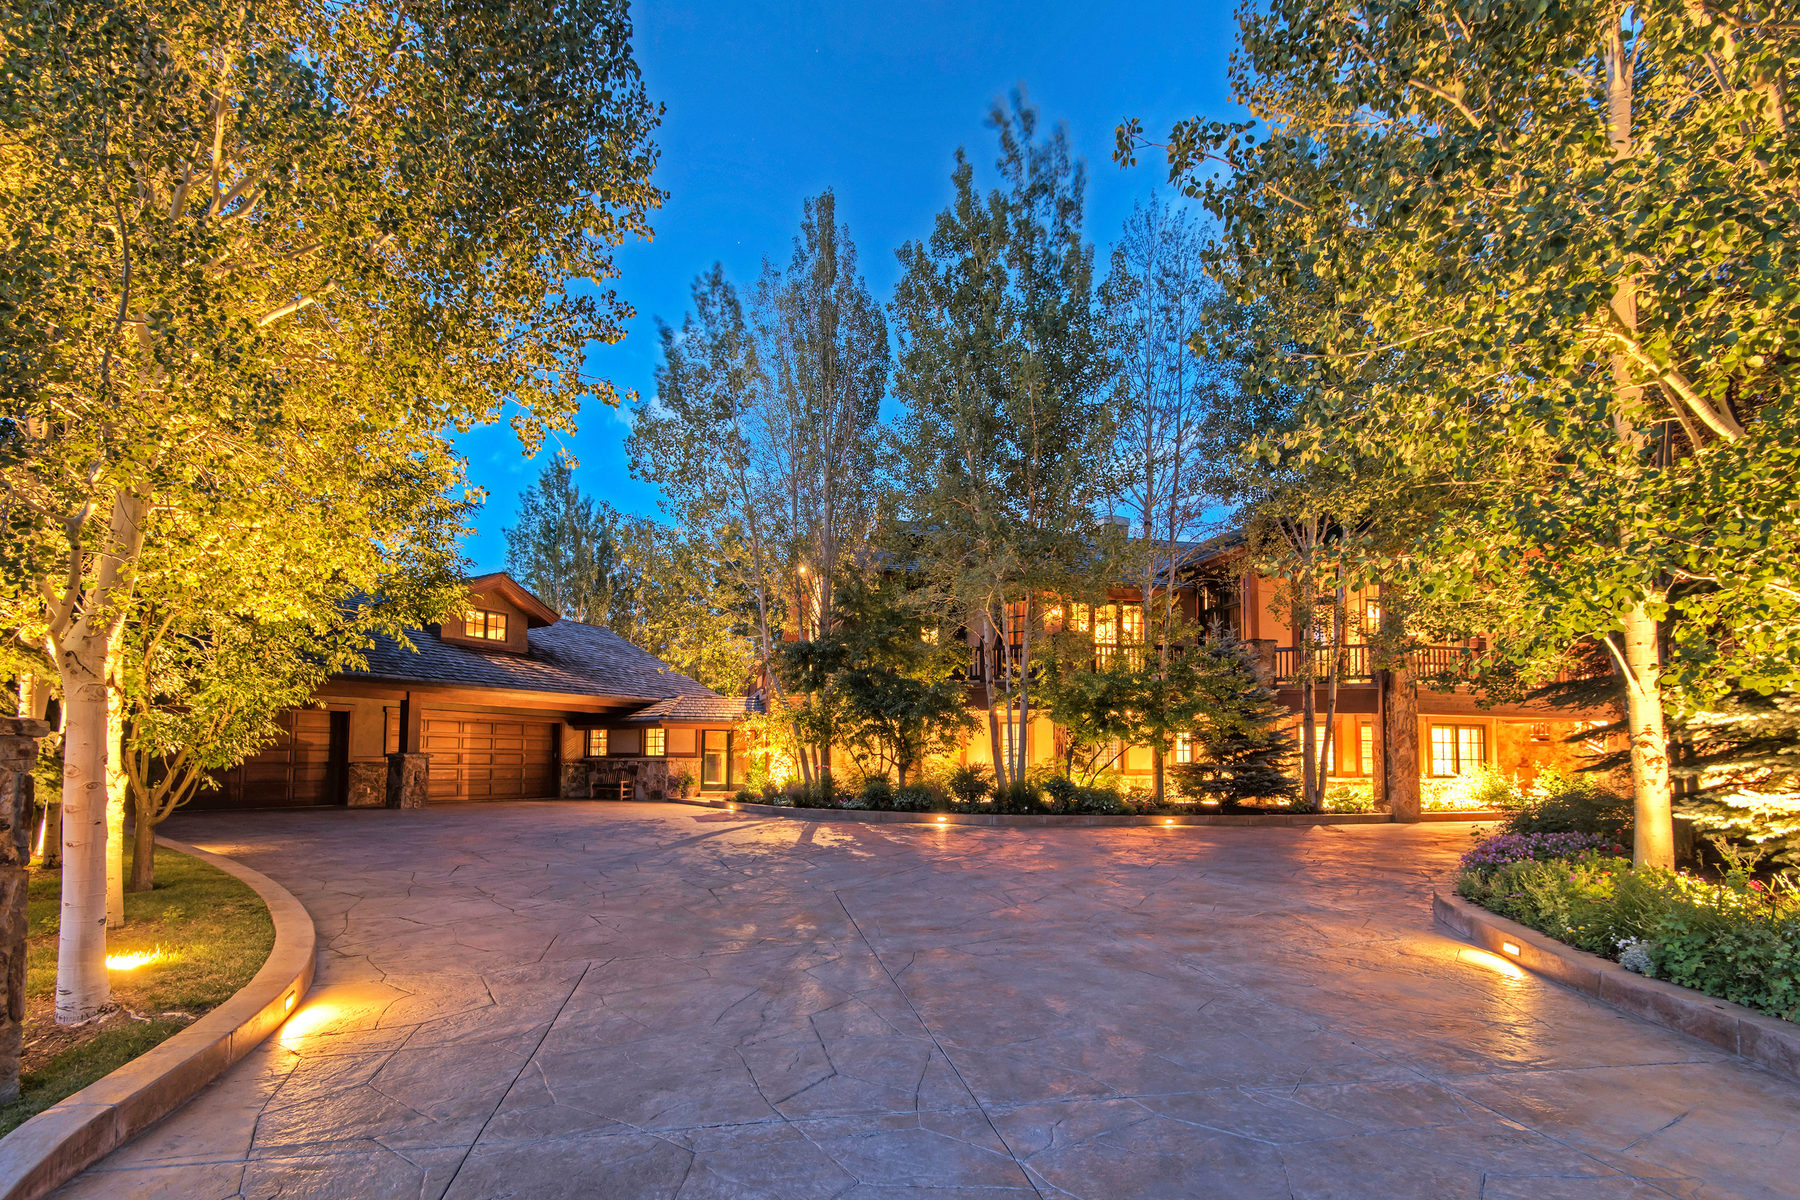 独户住宅 为 销售 在 Stunning Park Meadows Estate on over 2.5 Acres 2300 Lucky John Dr 帕克城, 犹他州, 84060 美国